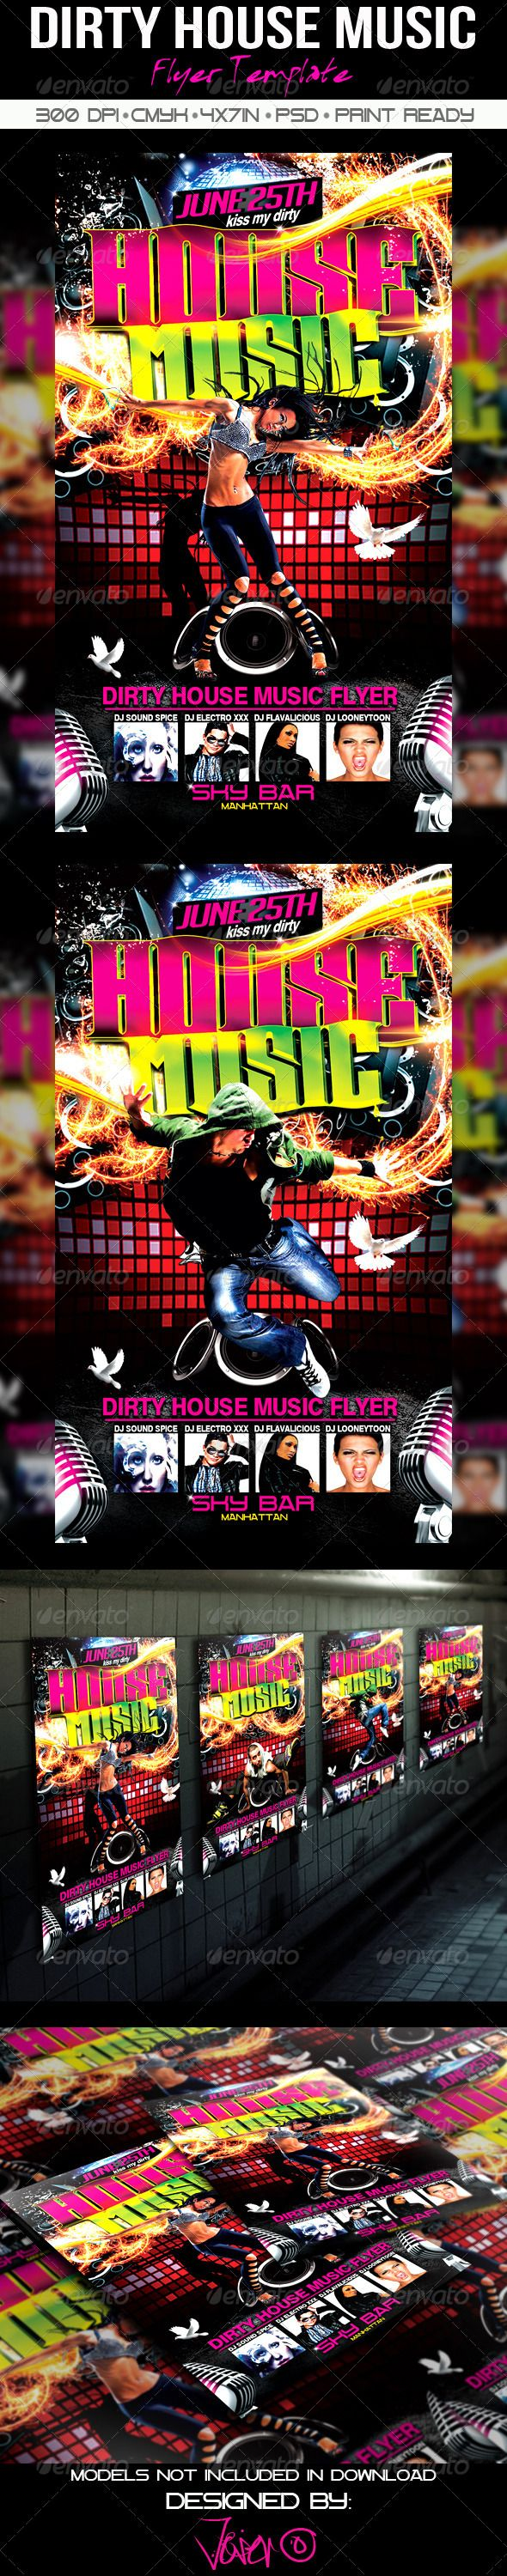 Dirty House Music Flyer Template  Music Flyer House Music And